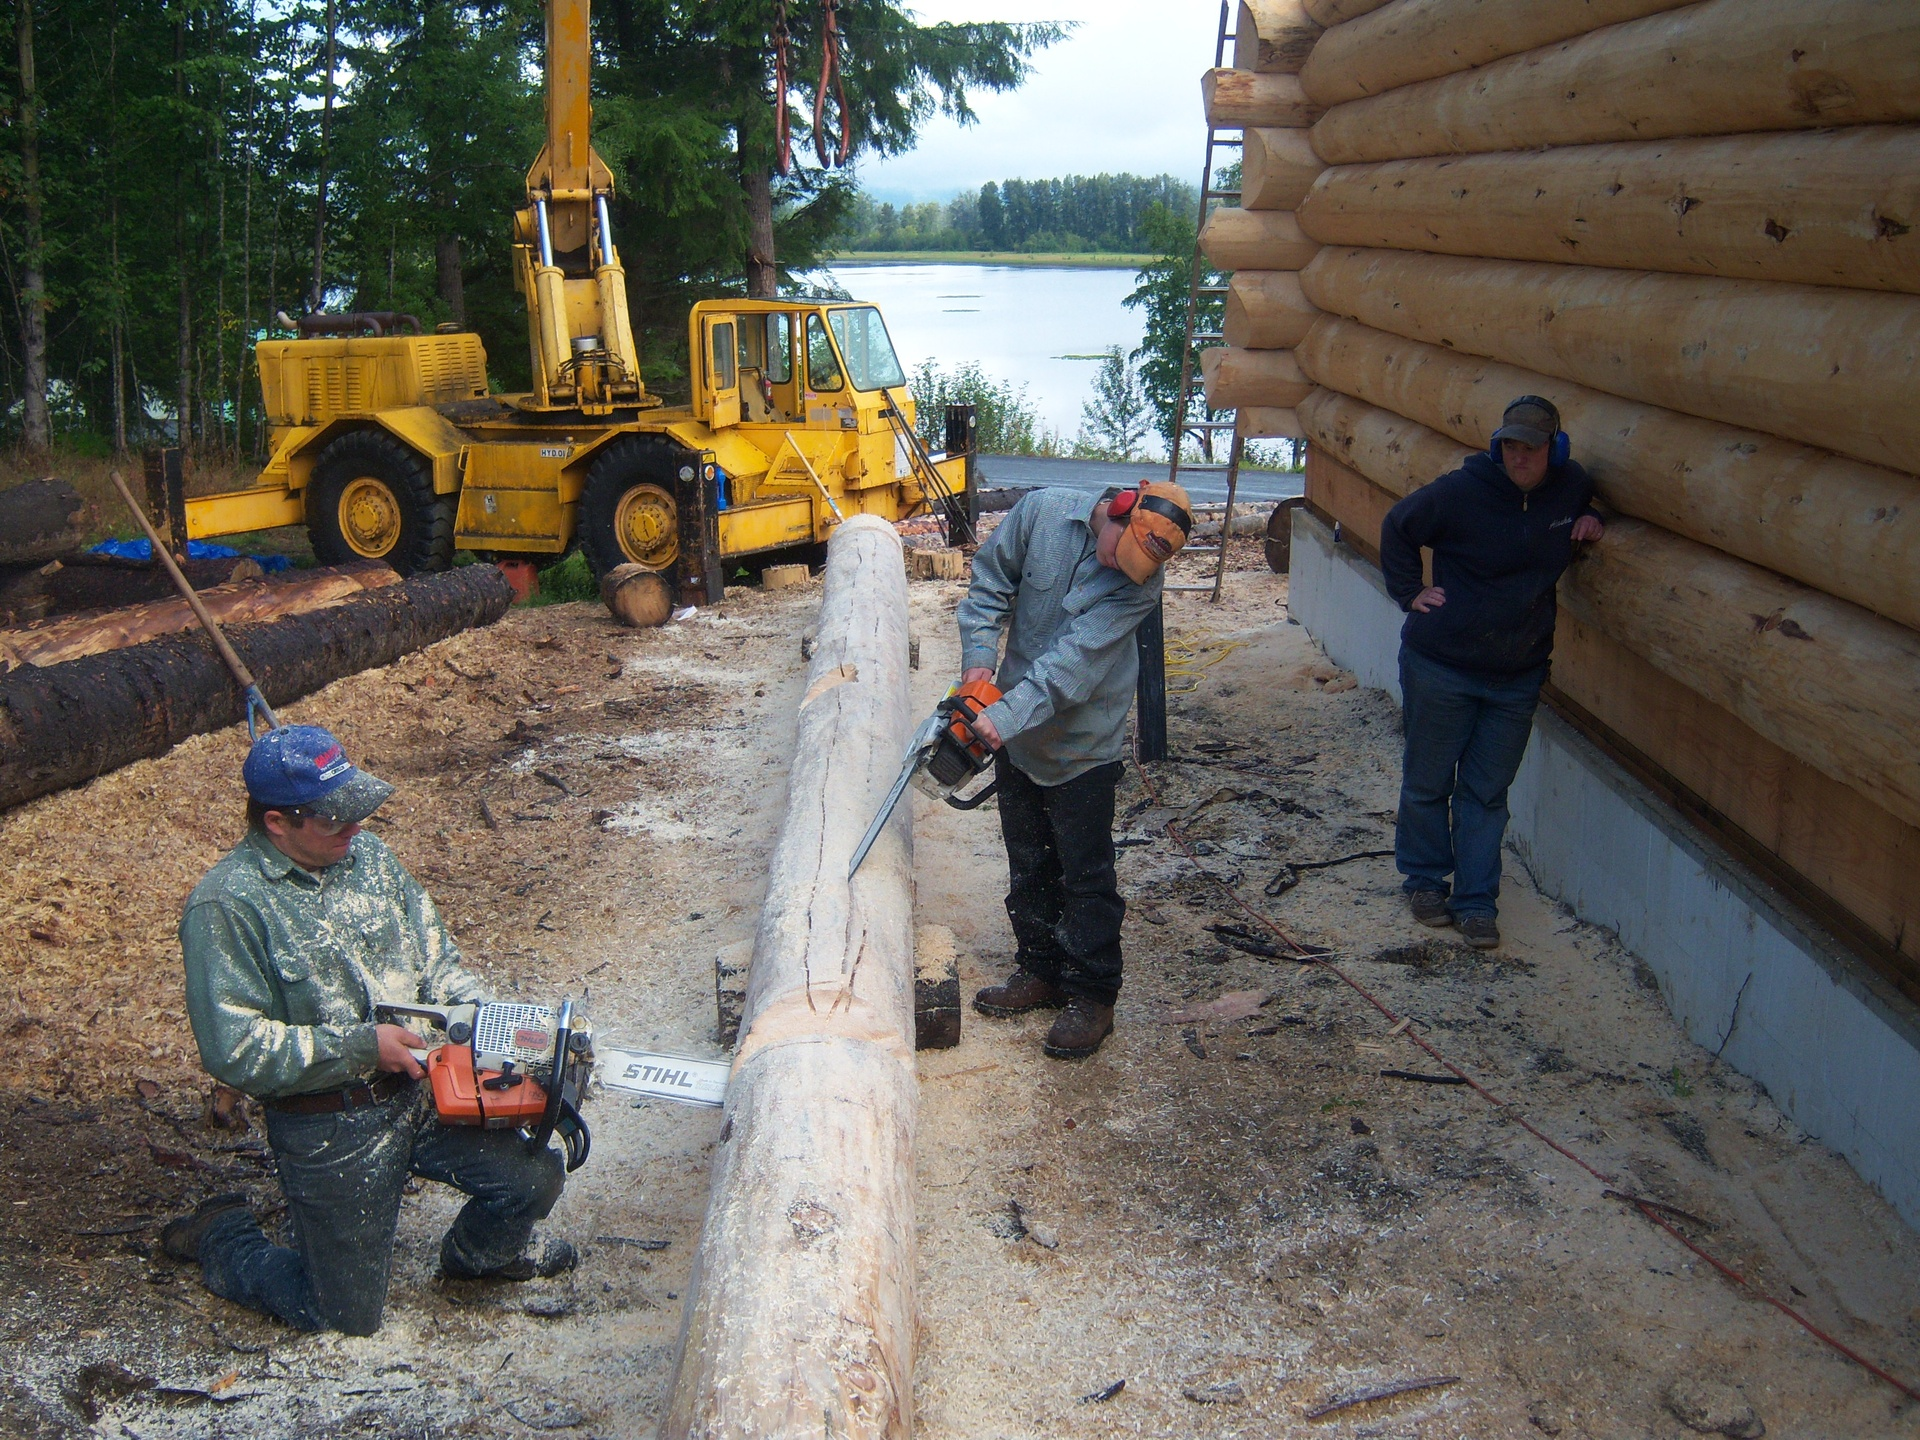 Cutting v-groove and notching logs.